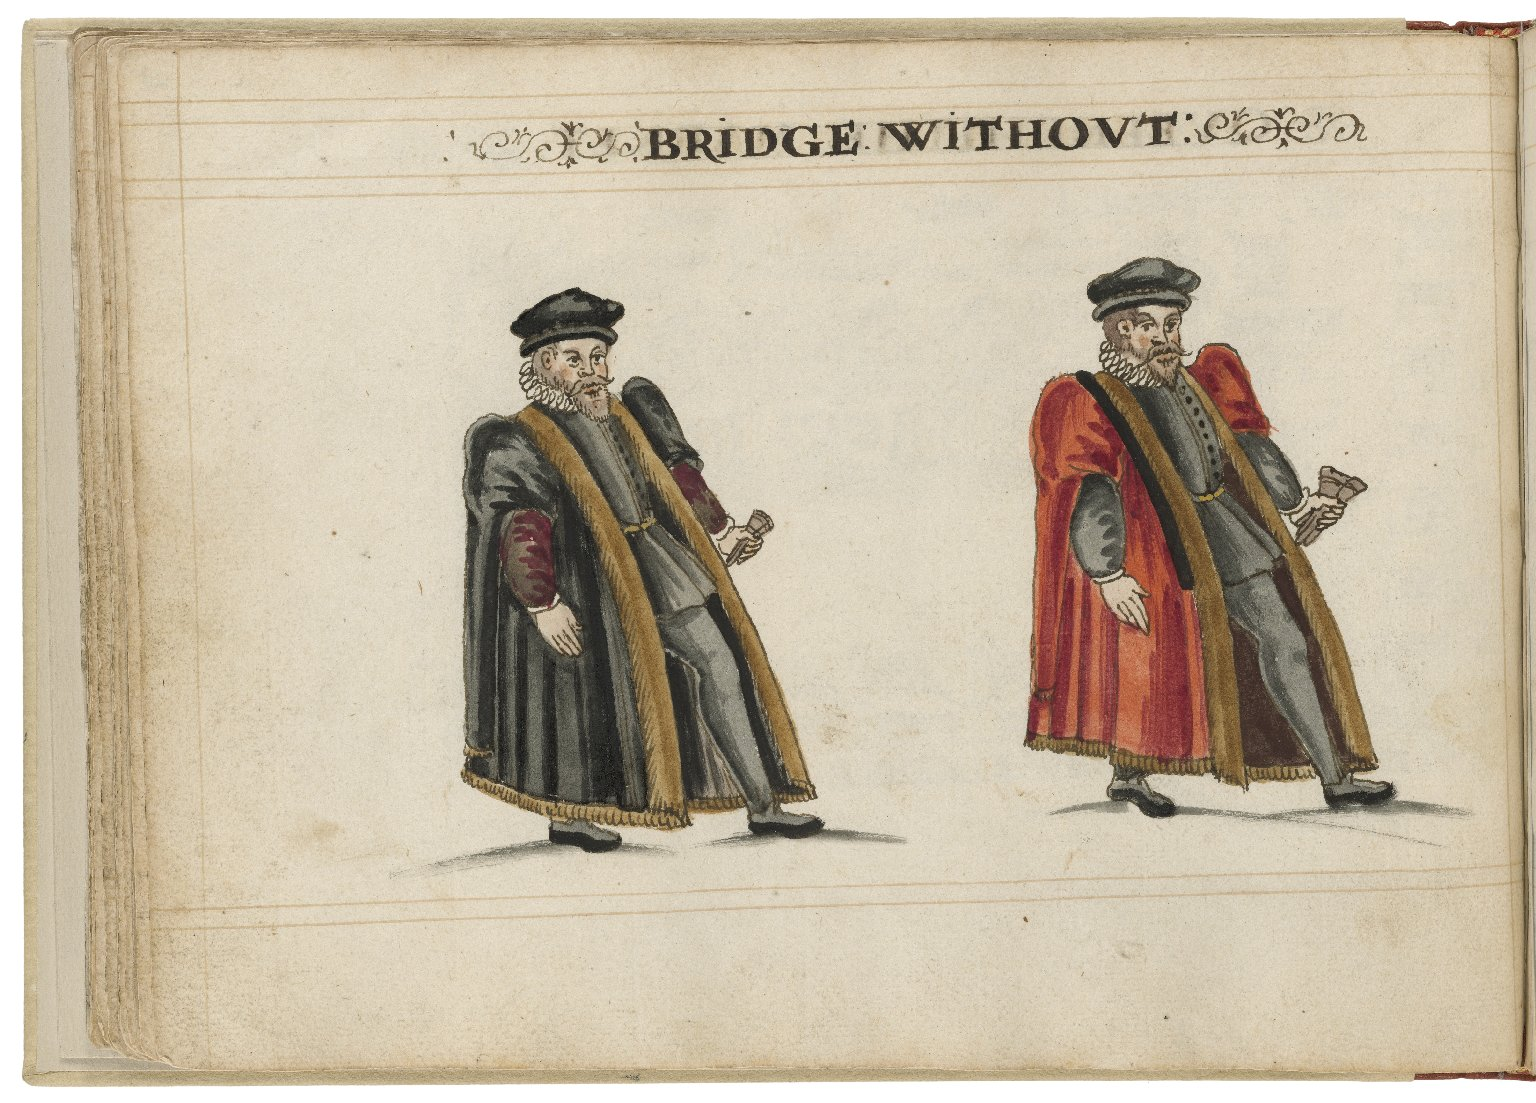 Watercolour painting of the alderman and deputy in charge of Bridge Without Ward by Hugh Alley. Image courtesy of the Folger Digital Image Collection.